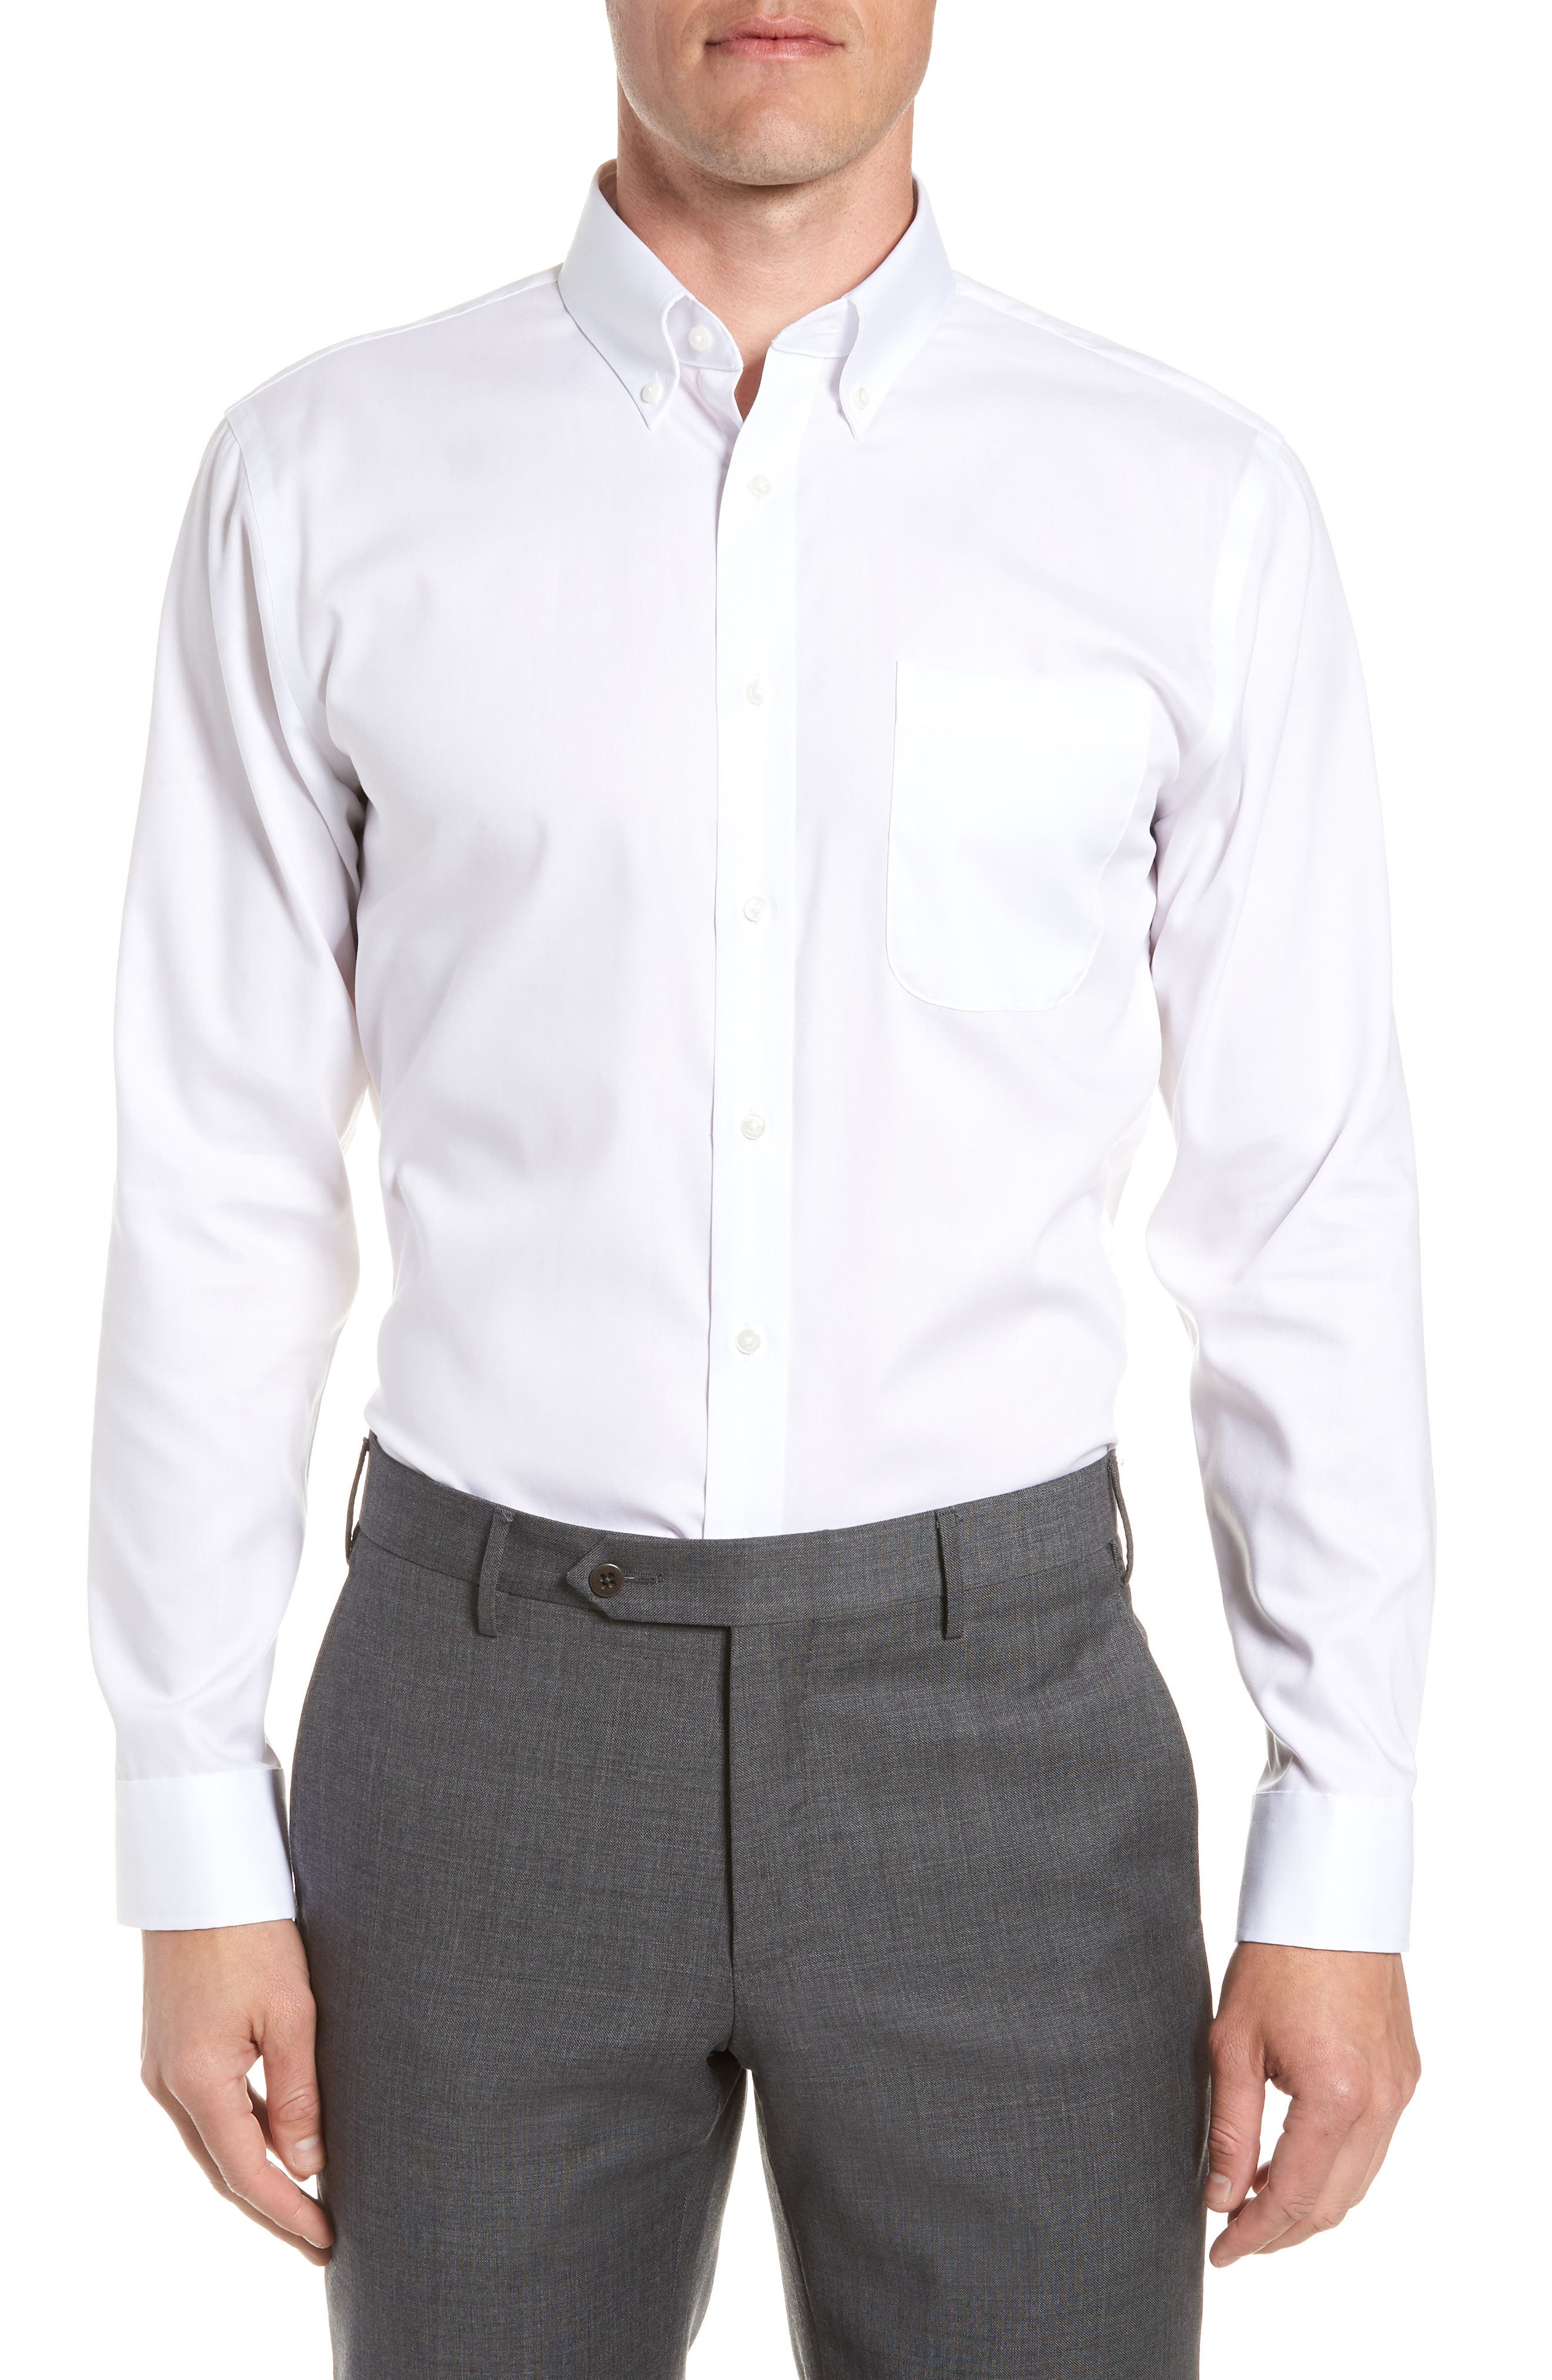 Trim Fit Non-Iron Dress Shirt,                             Main thumbnail 1, color,                             White